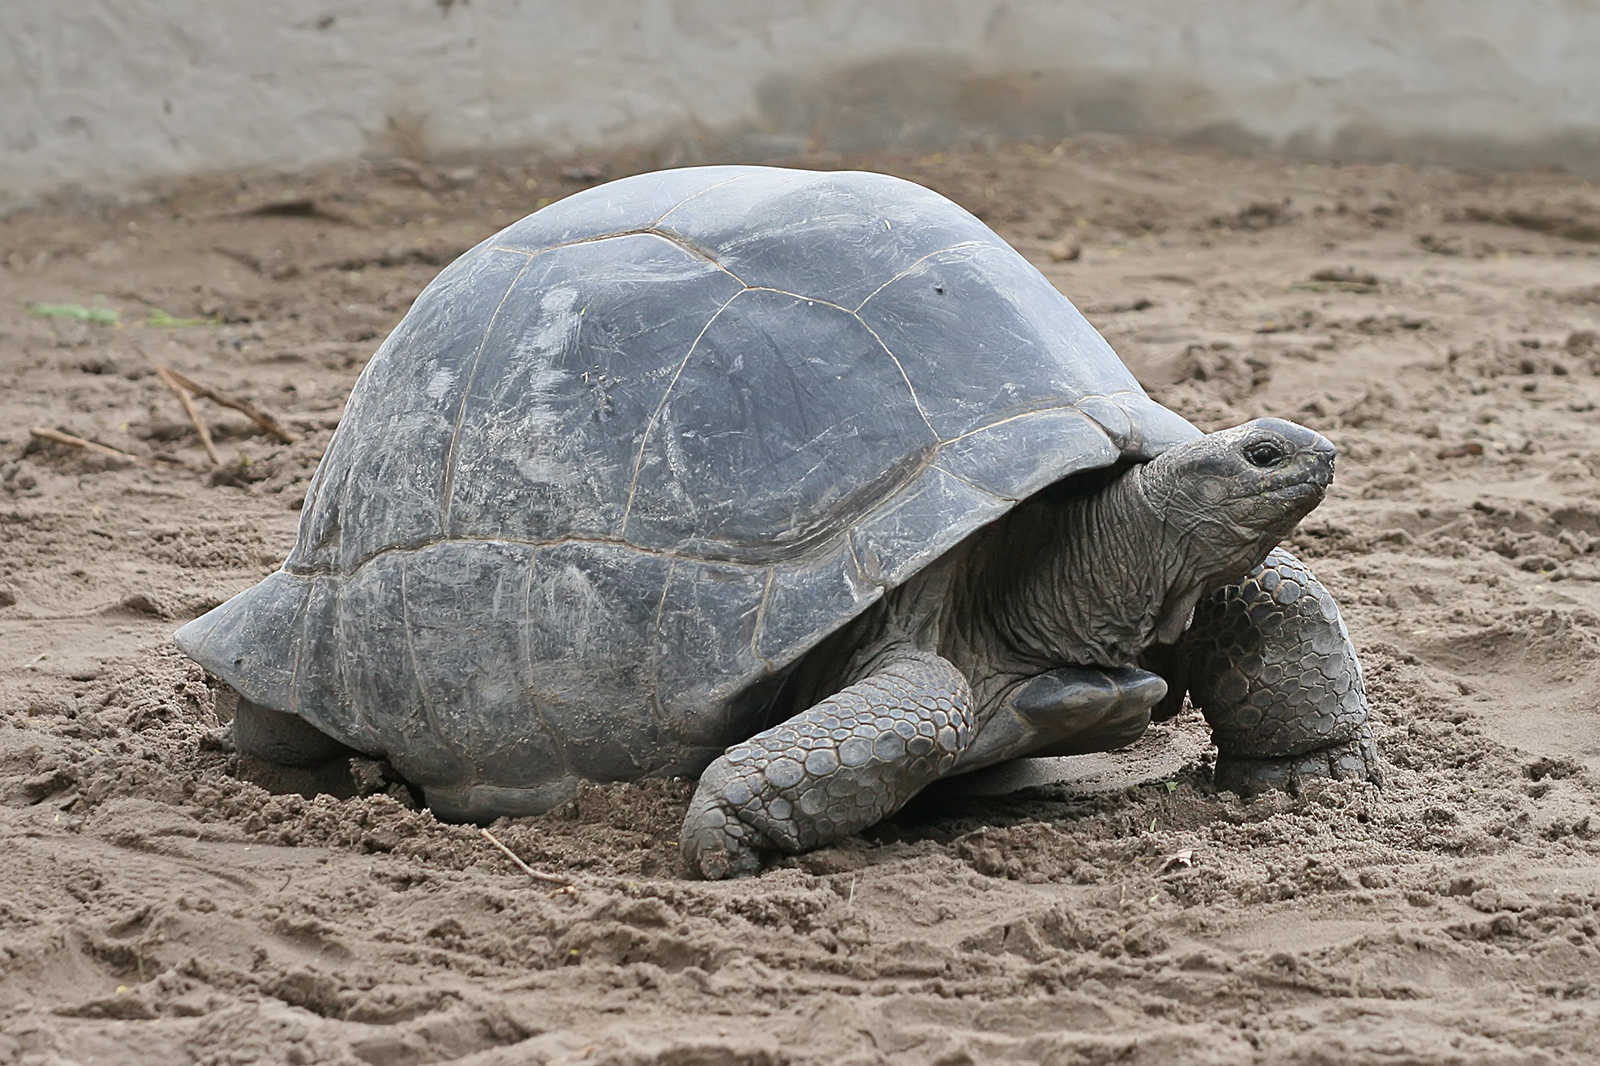 The Aldabra giant tortoise lives on the remote Aldabra atoll